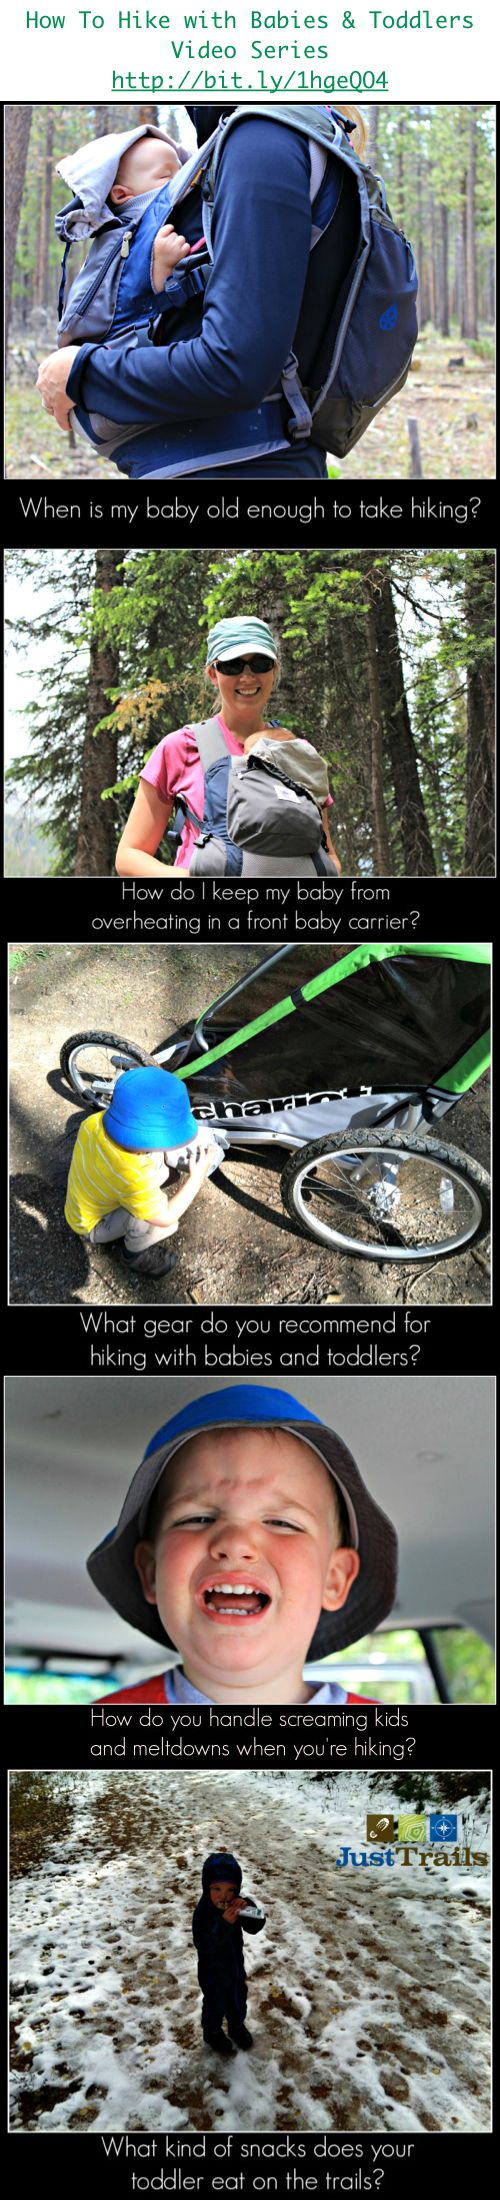 Frequently asked questions about hiking with babies & toddlers.